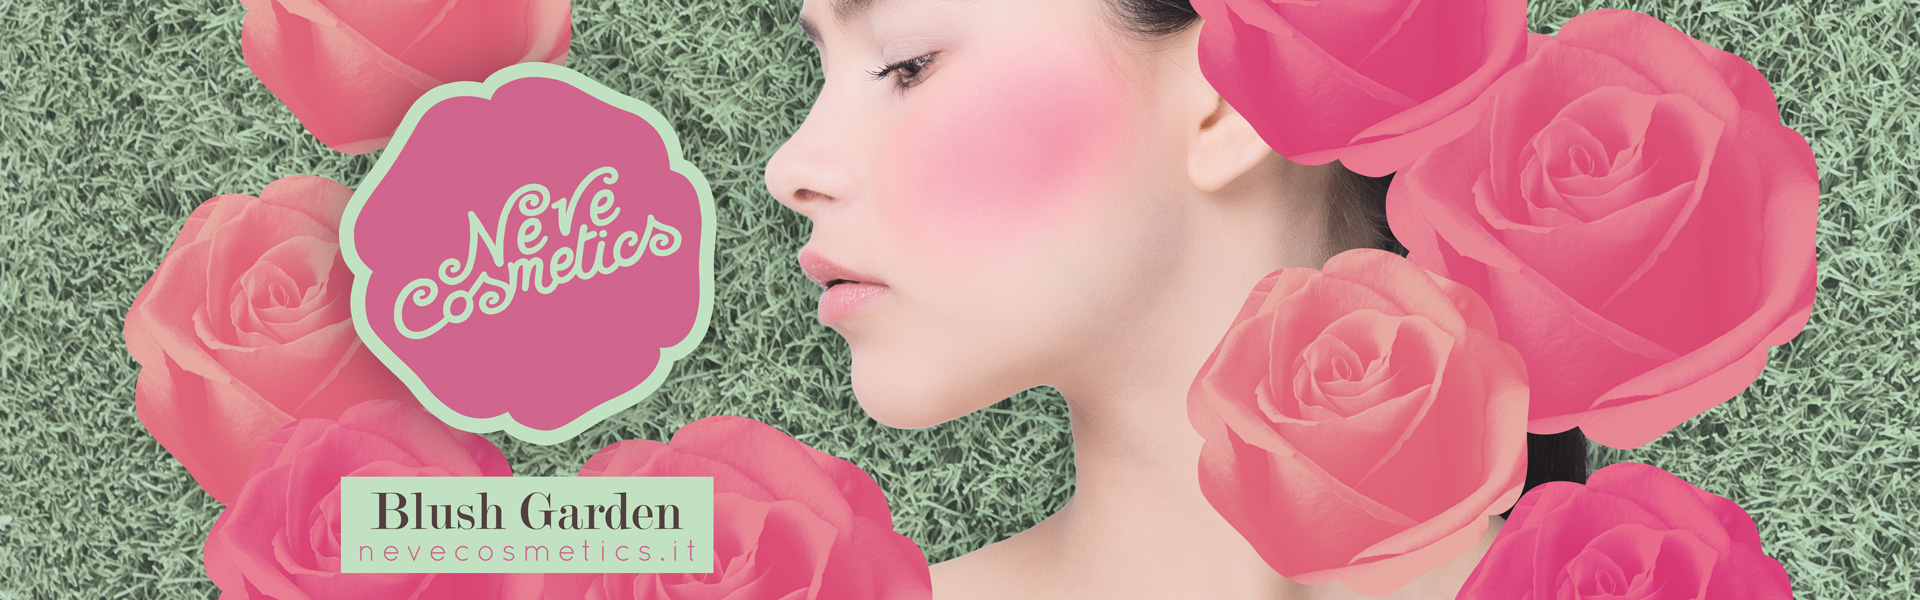 Blush Garden by Neve Cosmetics | Anteprima